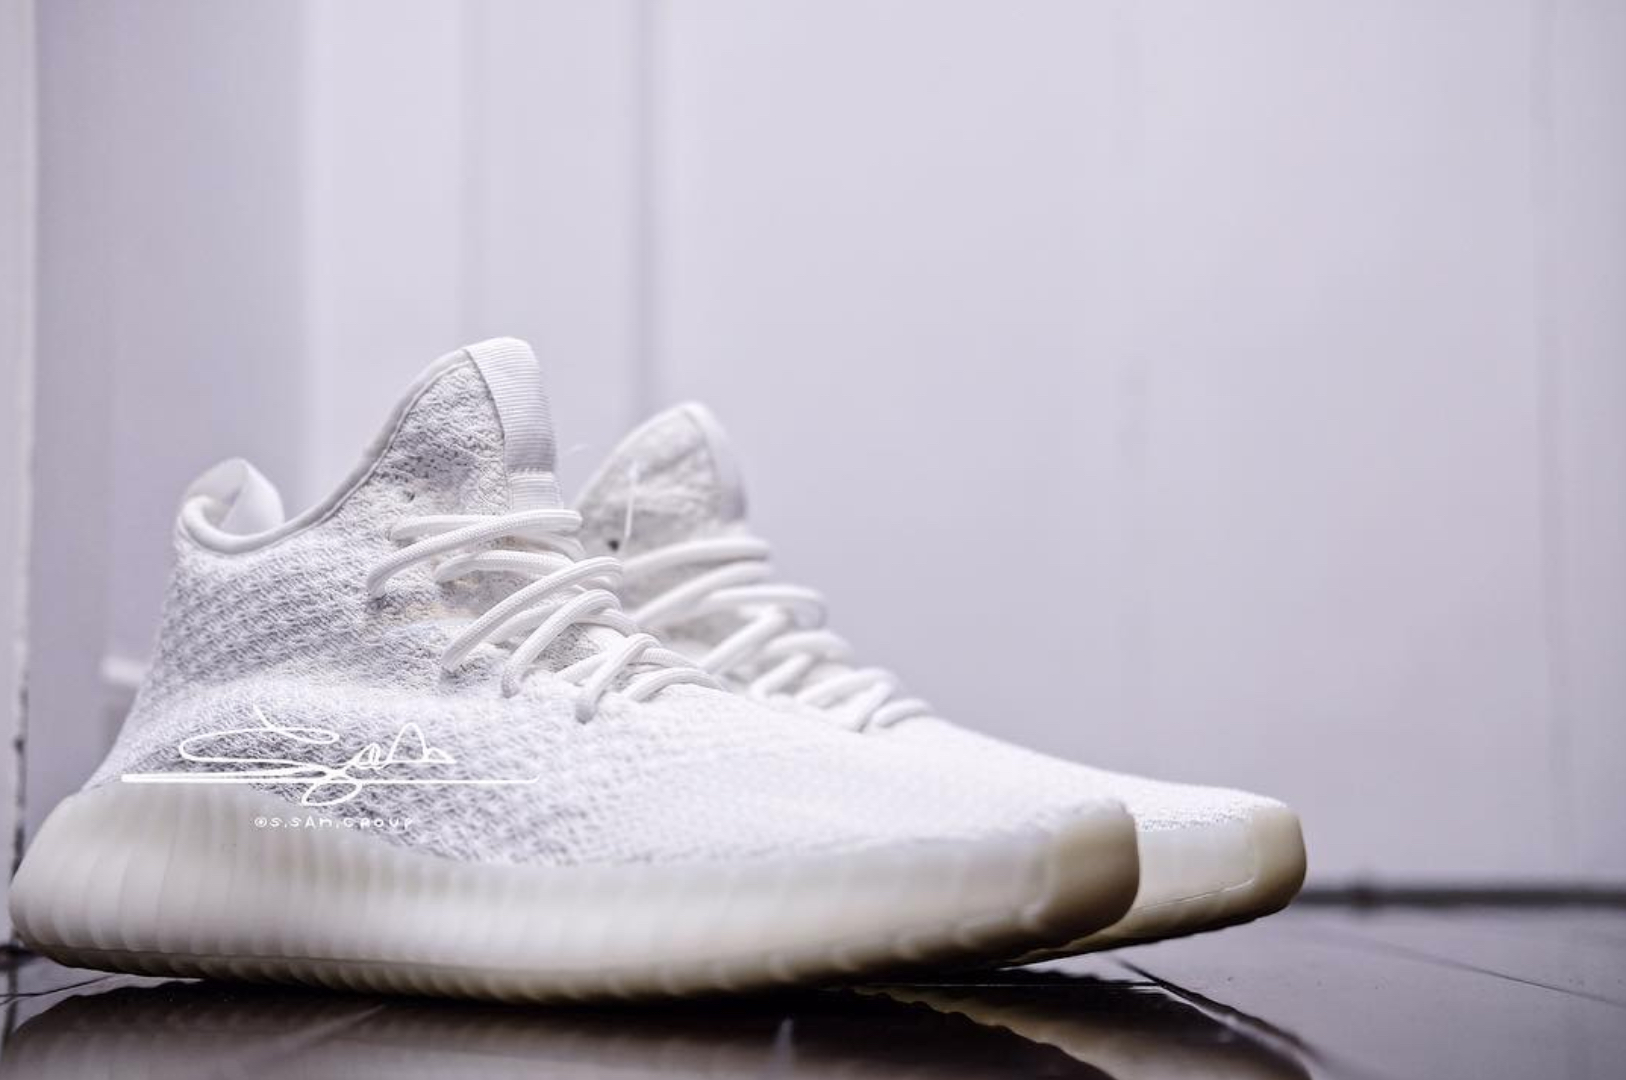 b283ba322afb0 adidas yeezy boost 650 white 4 - WearTesters